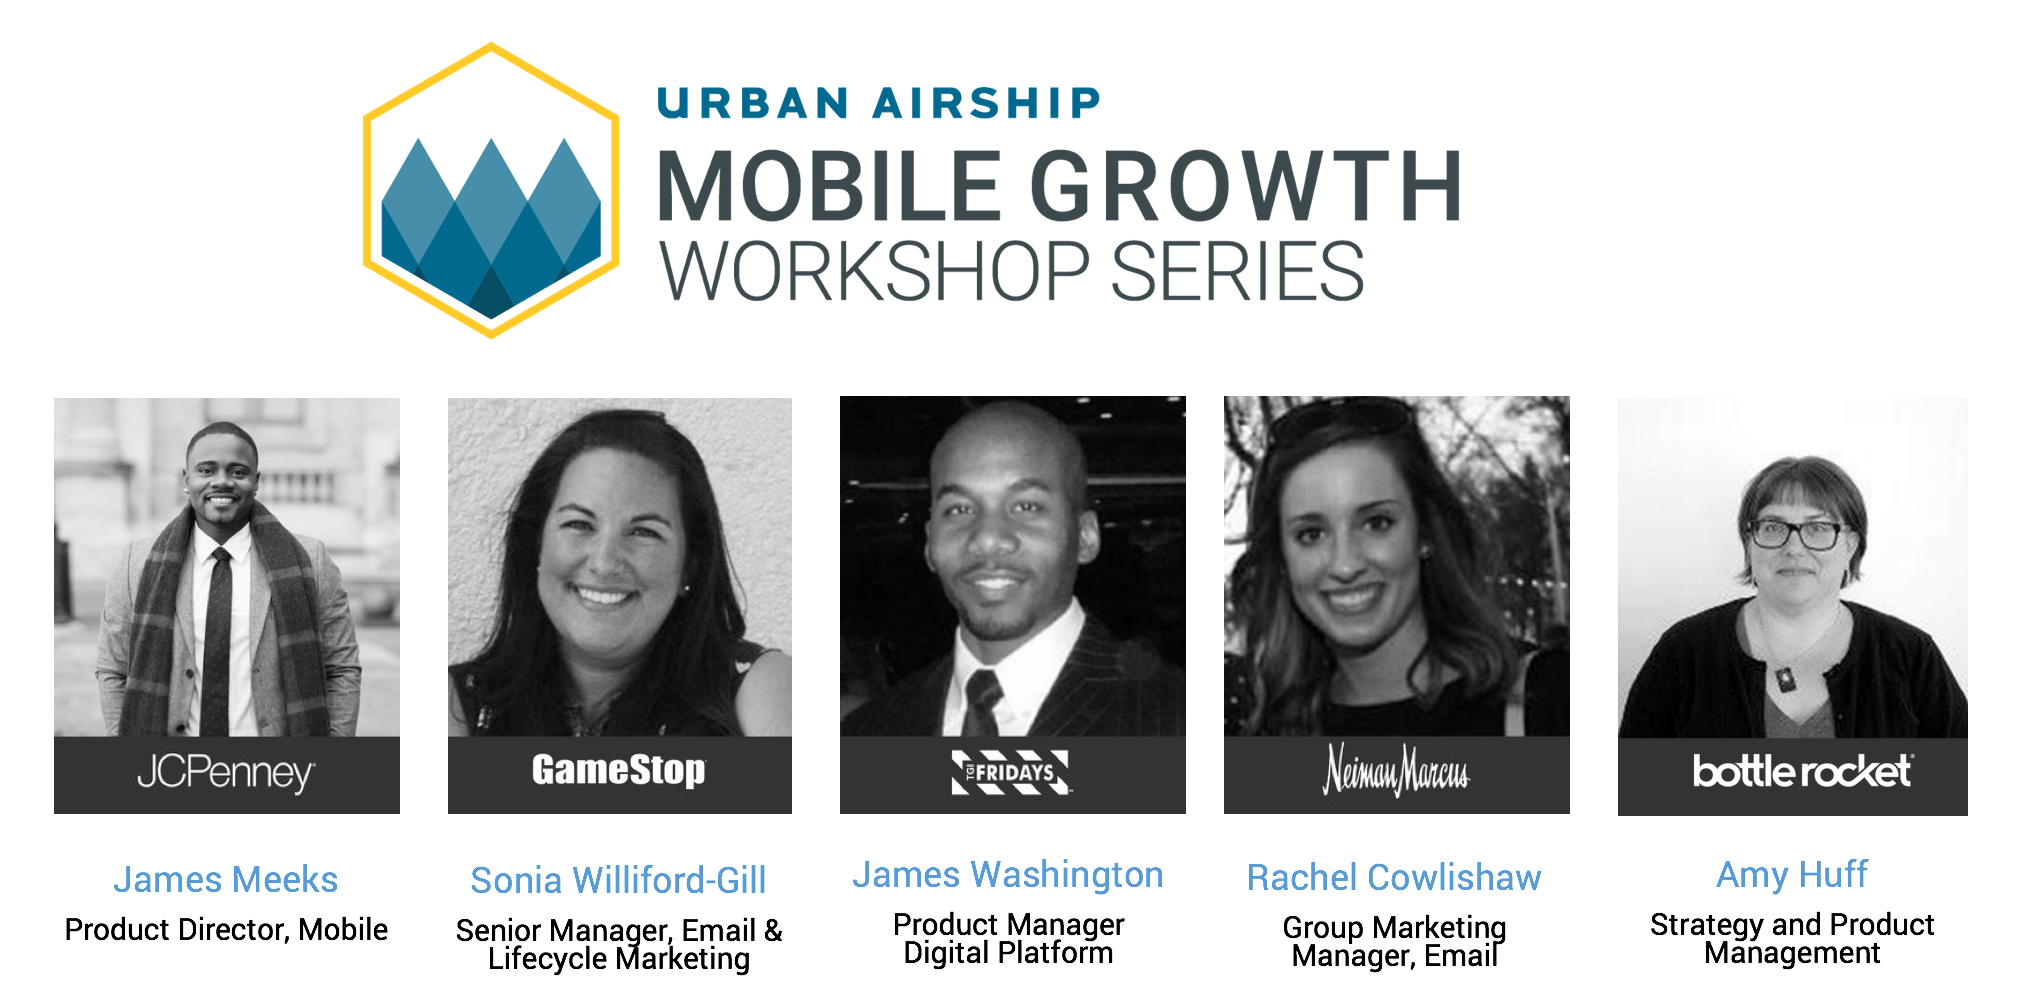 mobile-growth-workshop-dallas-jcpenney-gamestop-tgi-fridays-neiman-marcus-bottle-rocket